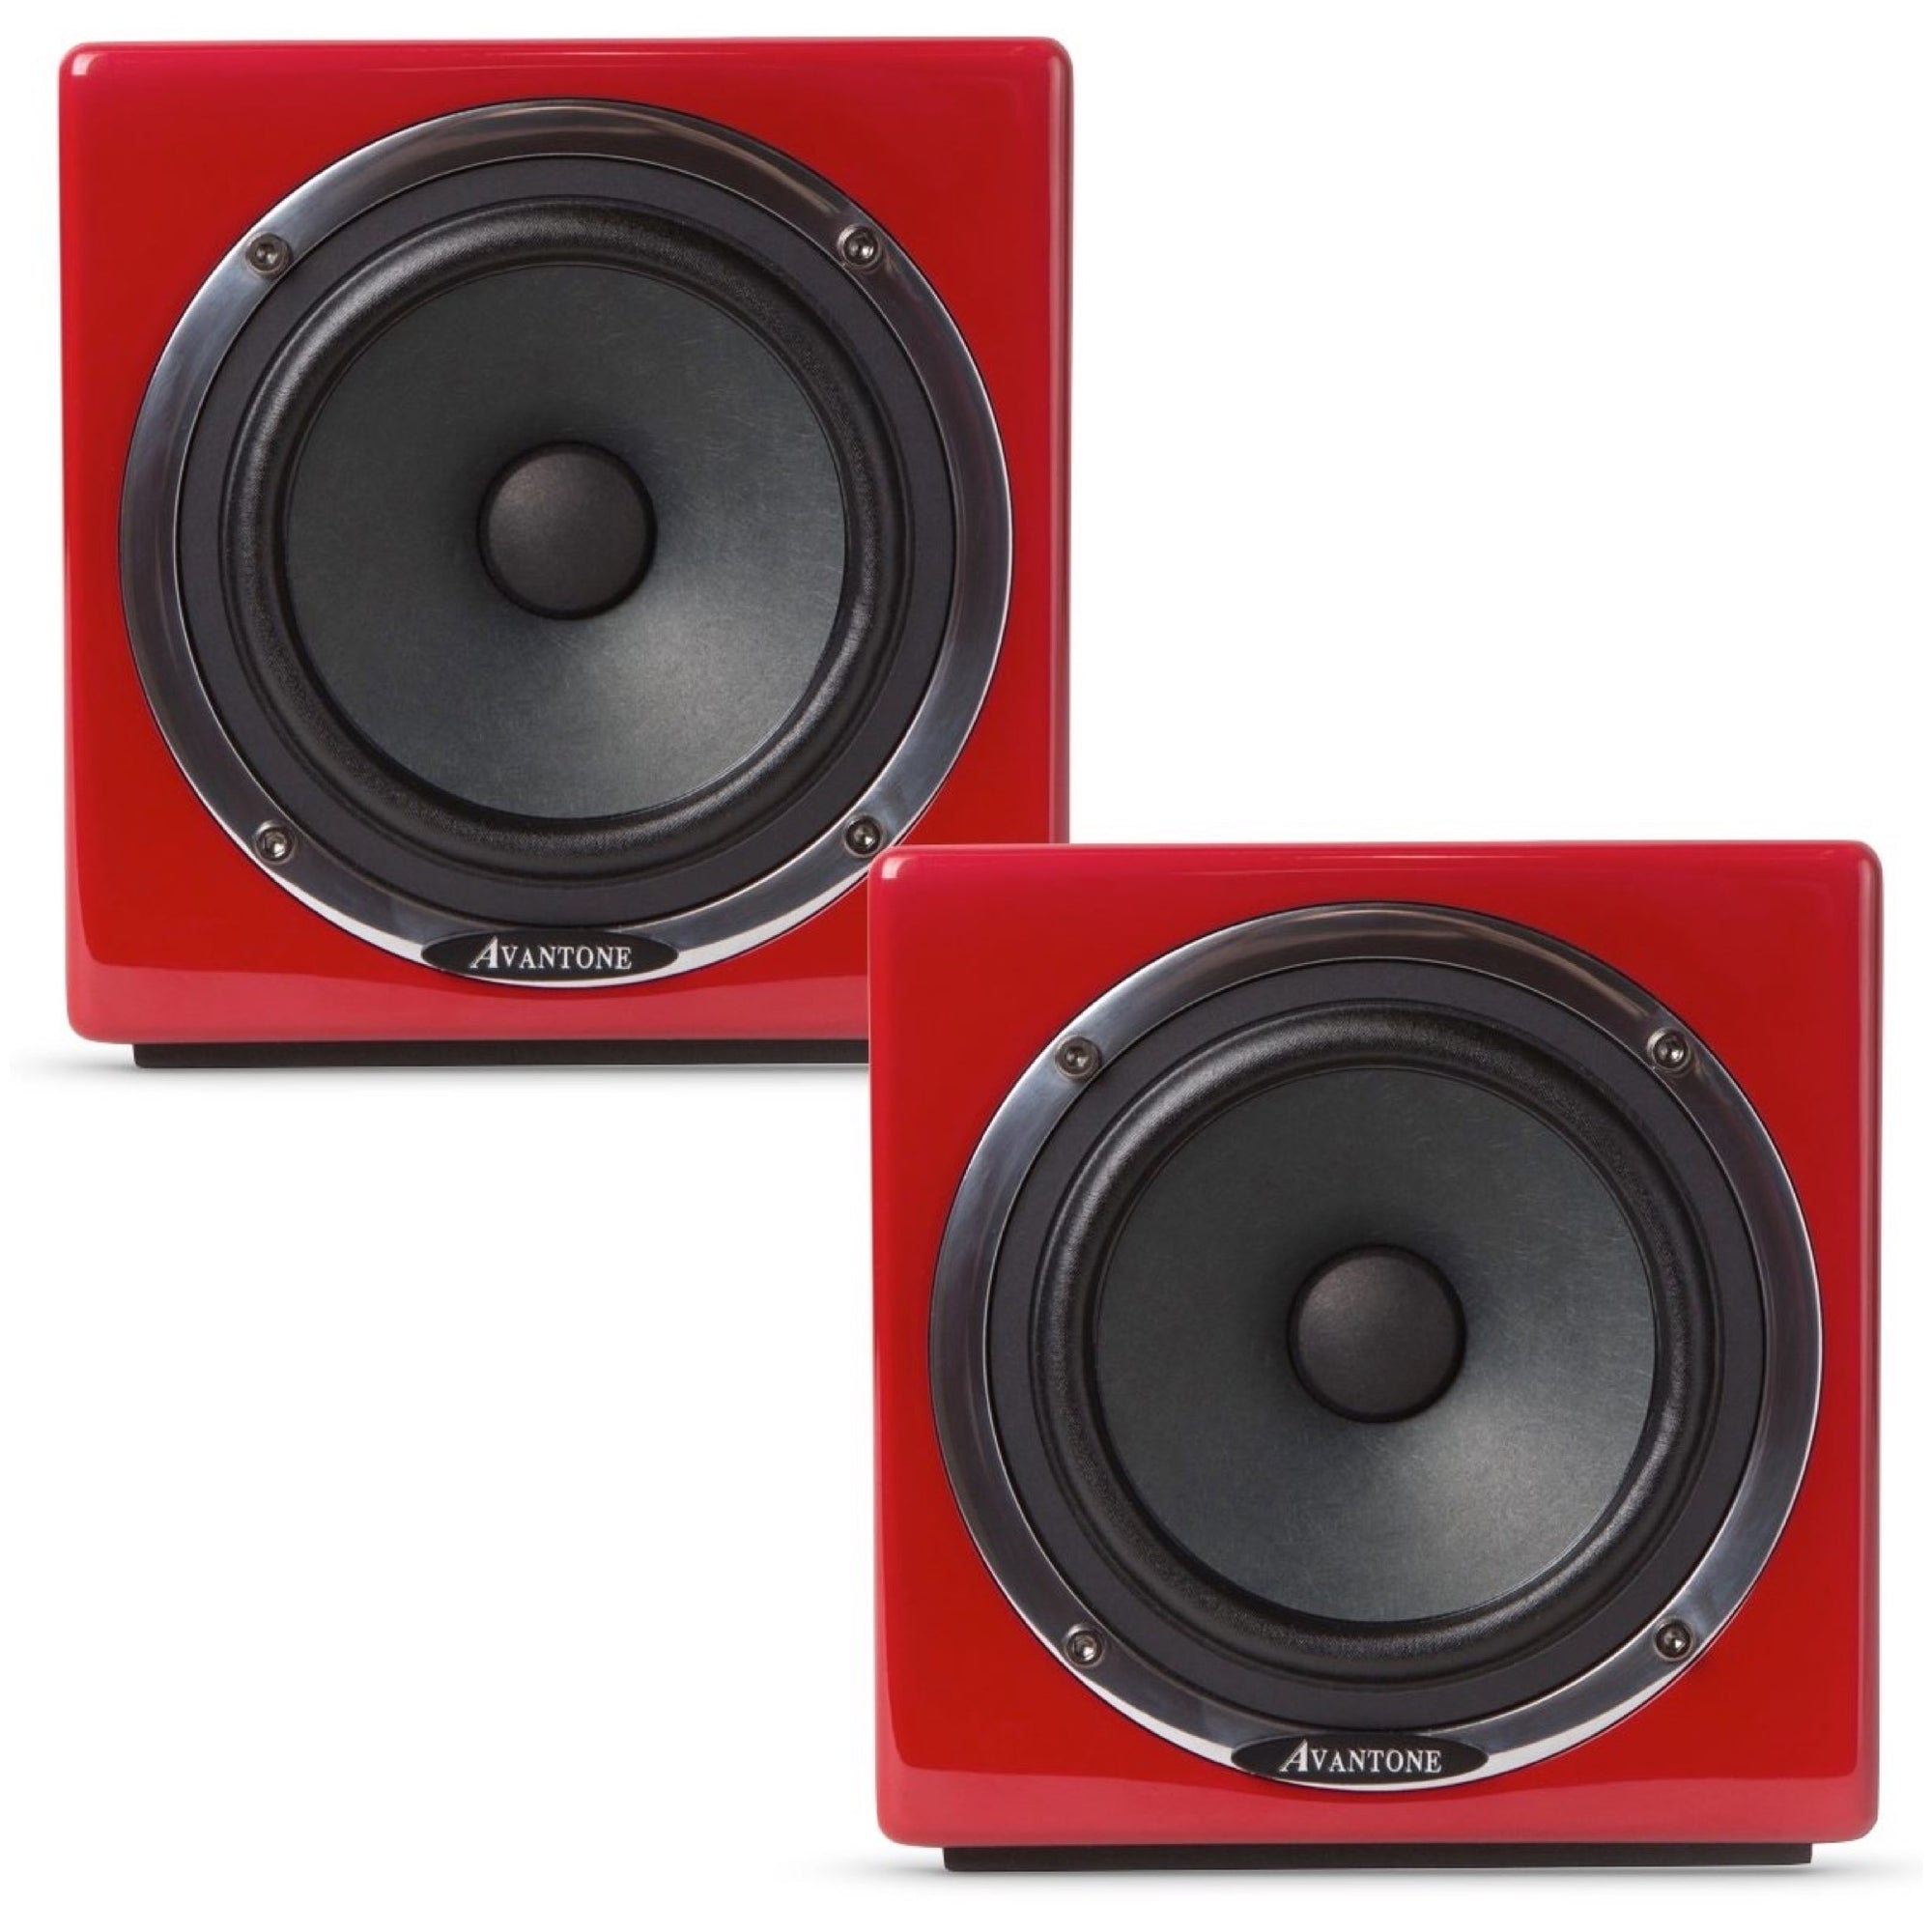 Avantone MixCubes Active Studio Monitor (60 Watts, 1x5.25 Inch), Red, Pair